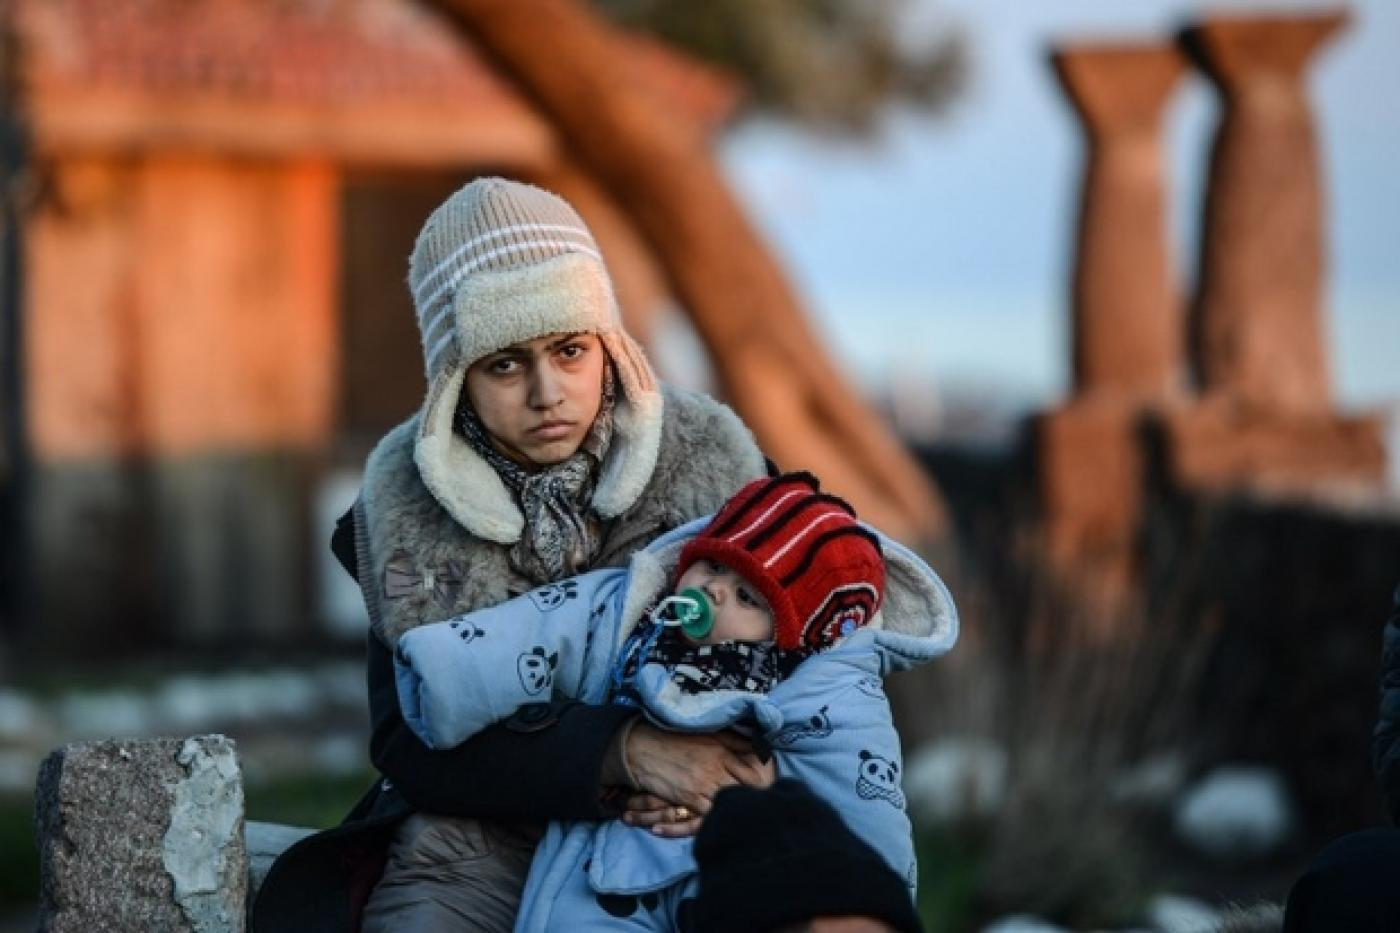 The Syrian smuggler and the refugee: Bullets, beatings and